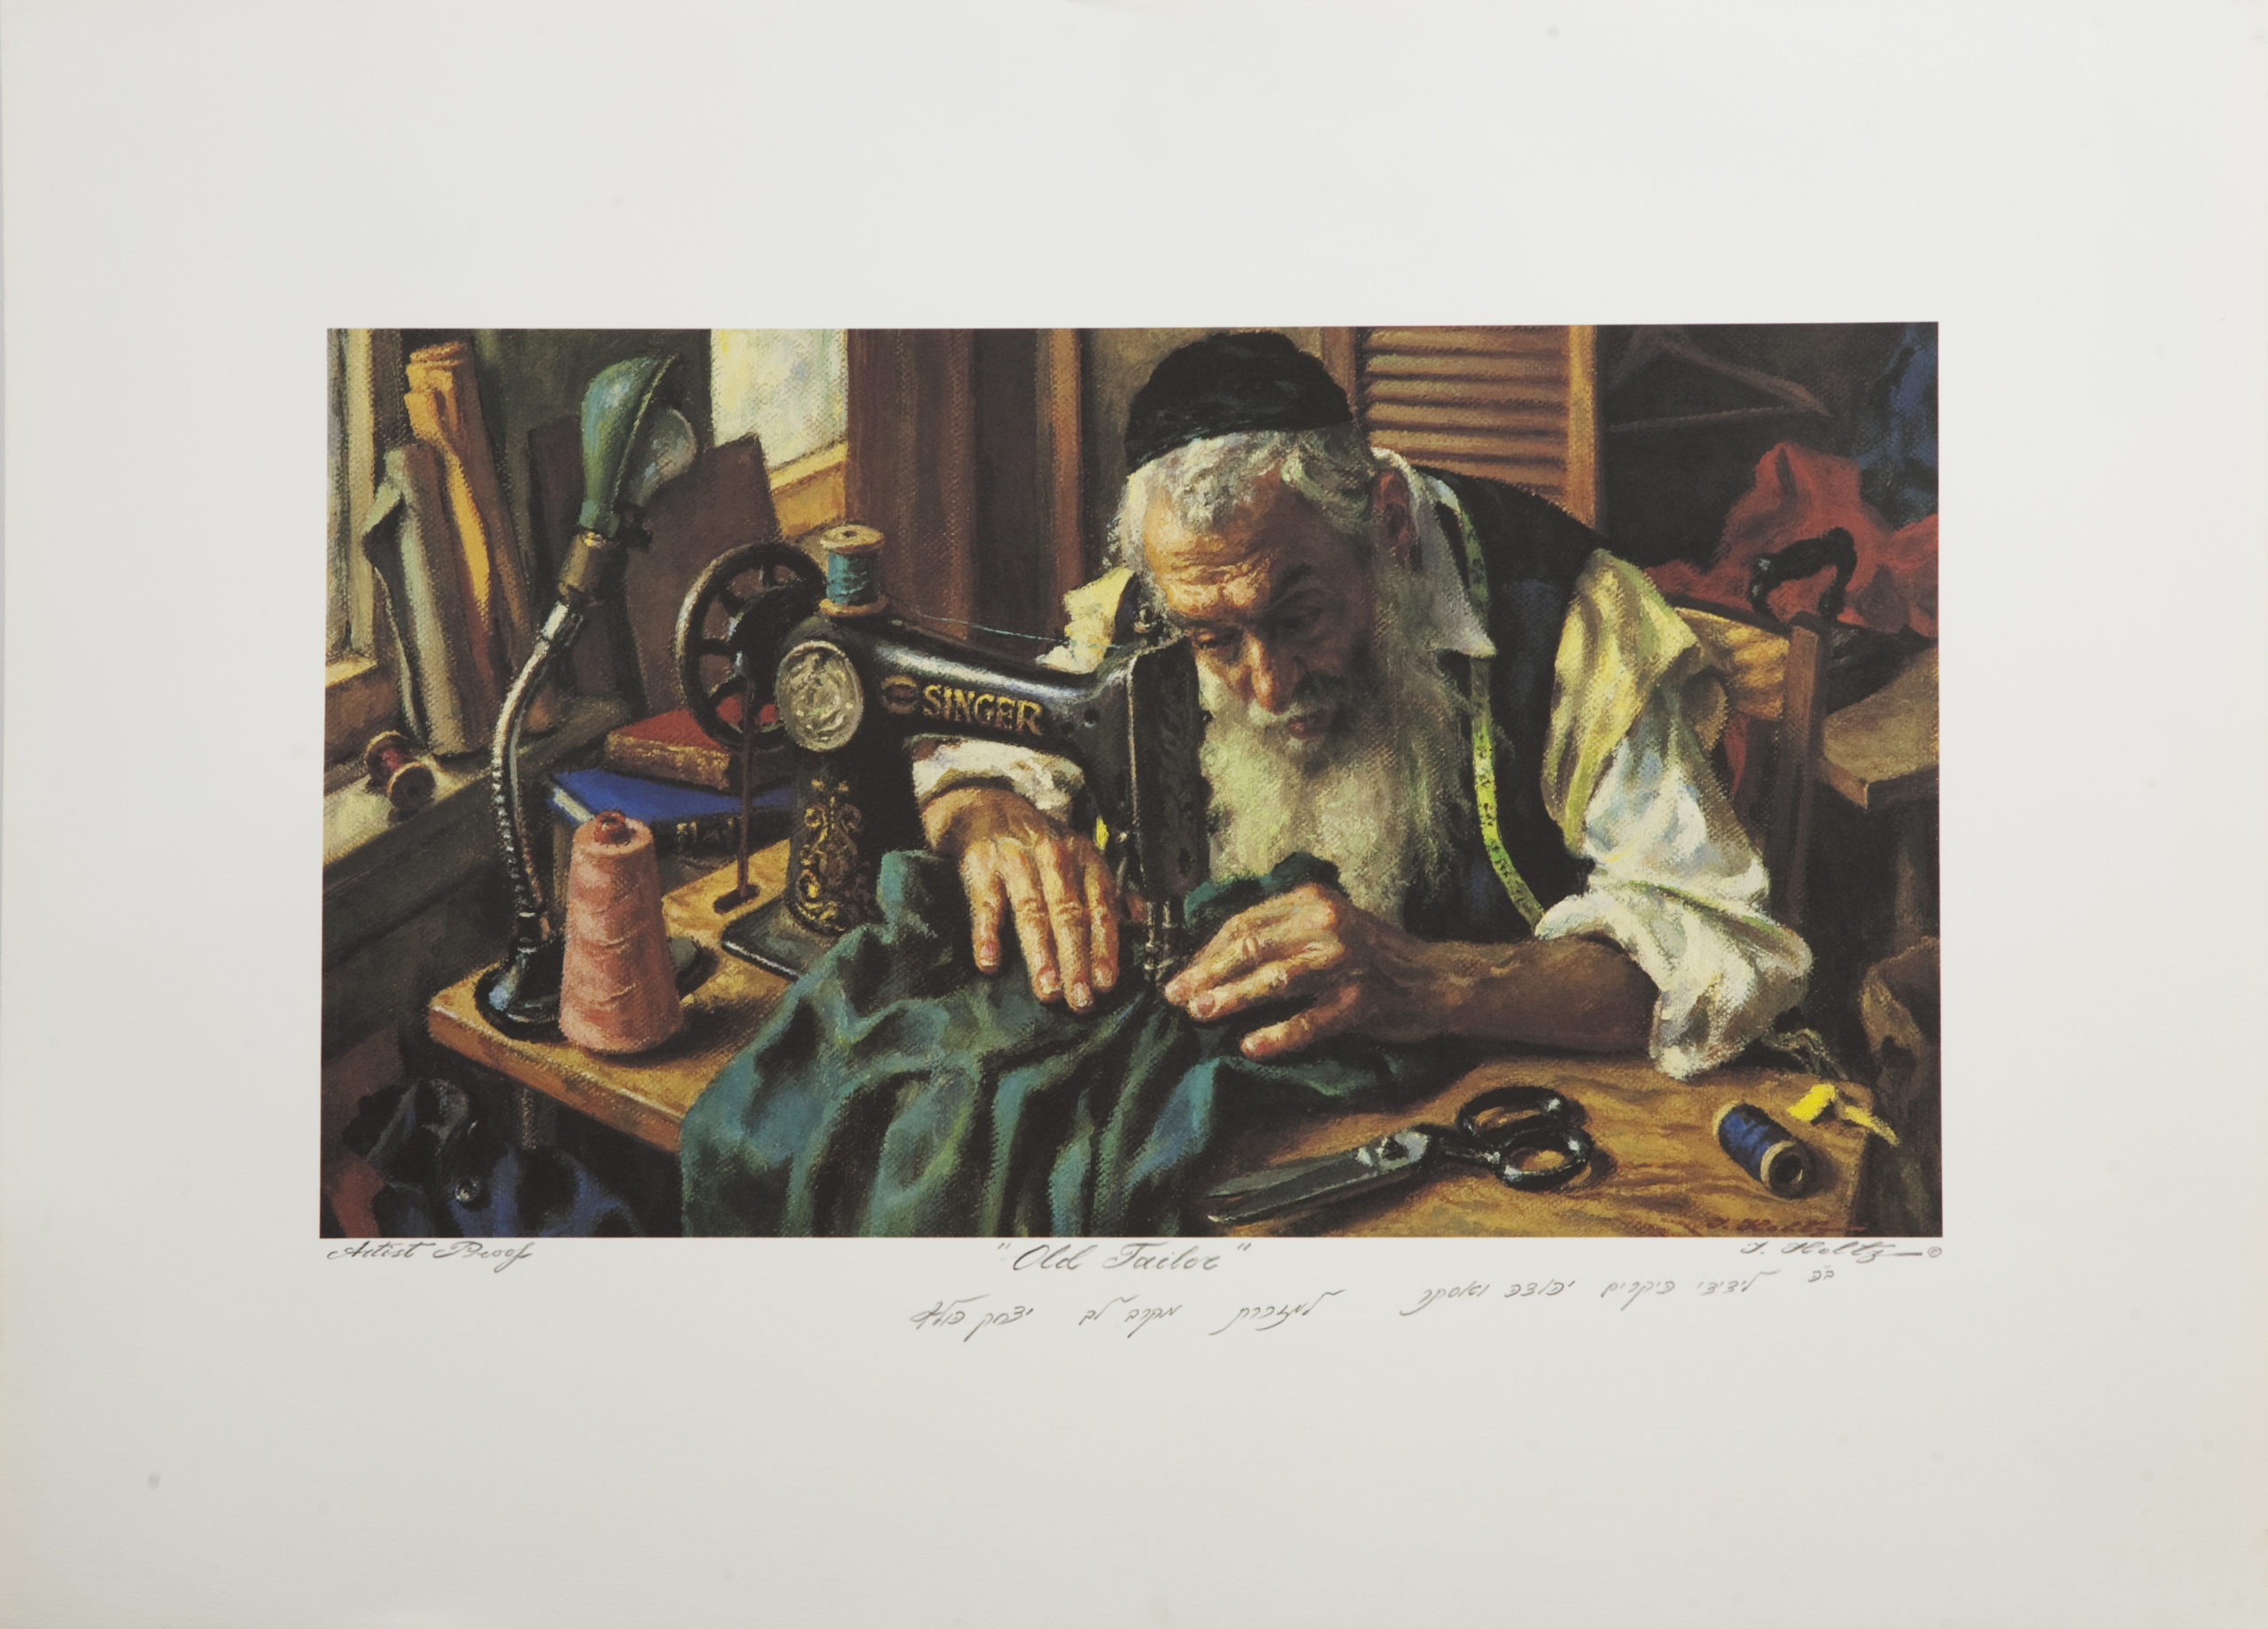 L61 Old Tailor - Color - Lithograph - 27.5 x 19.5 - No Frame - $530